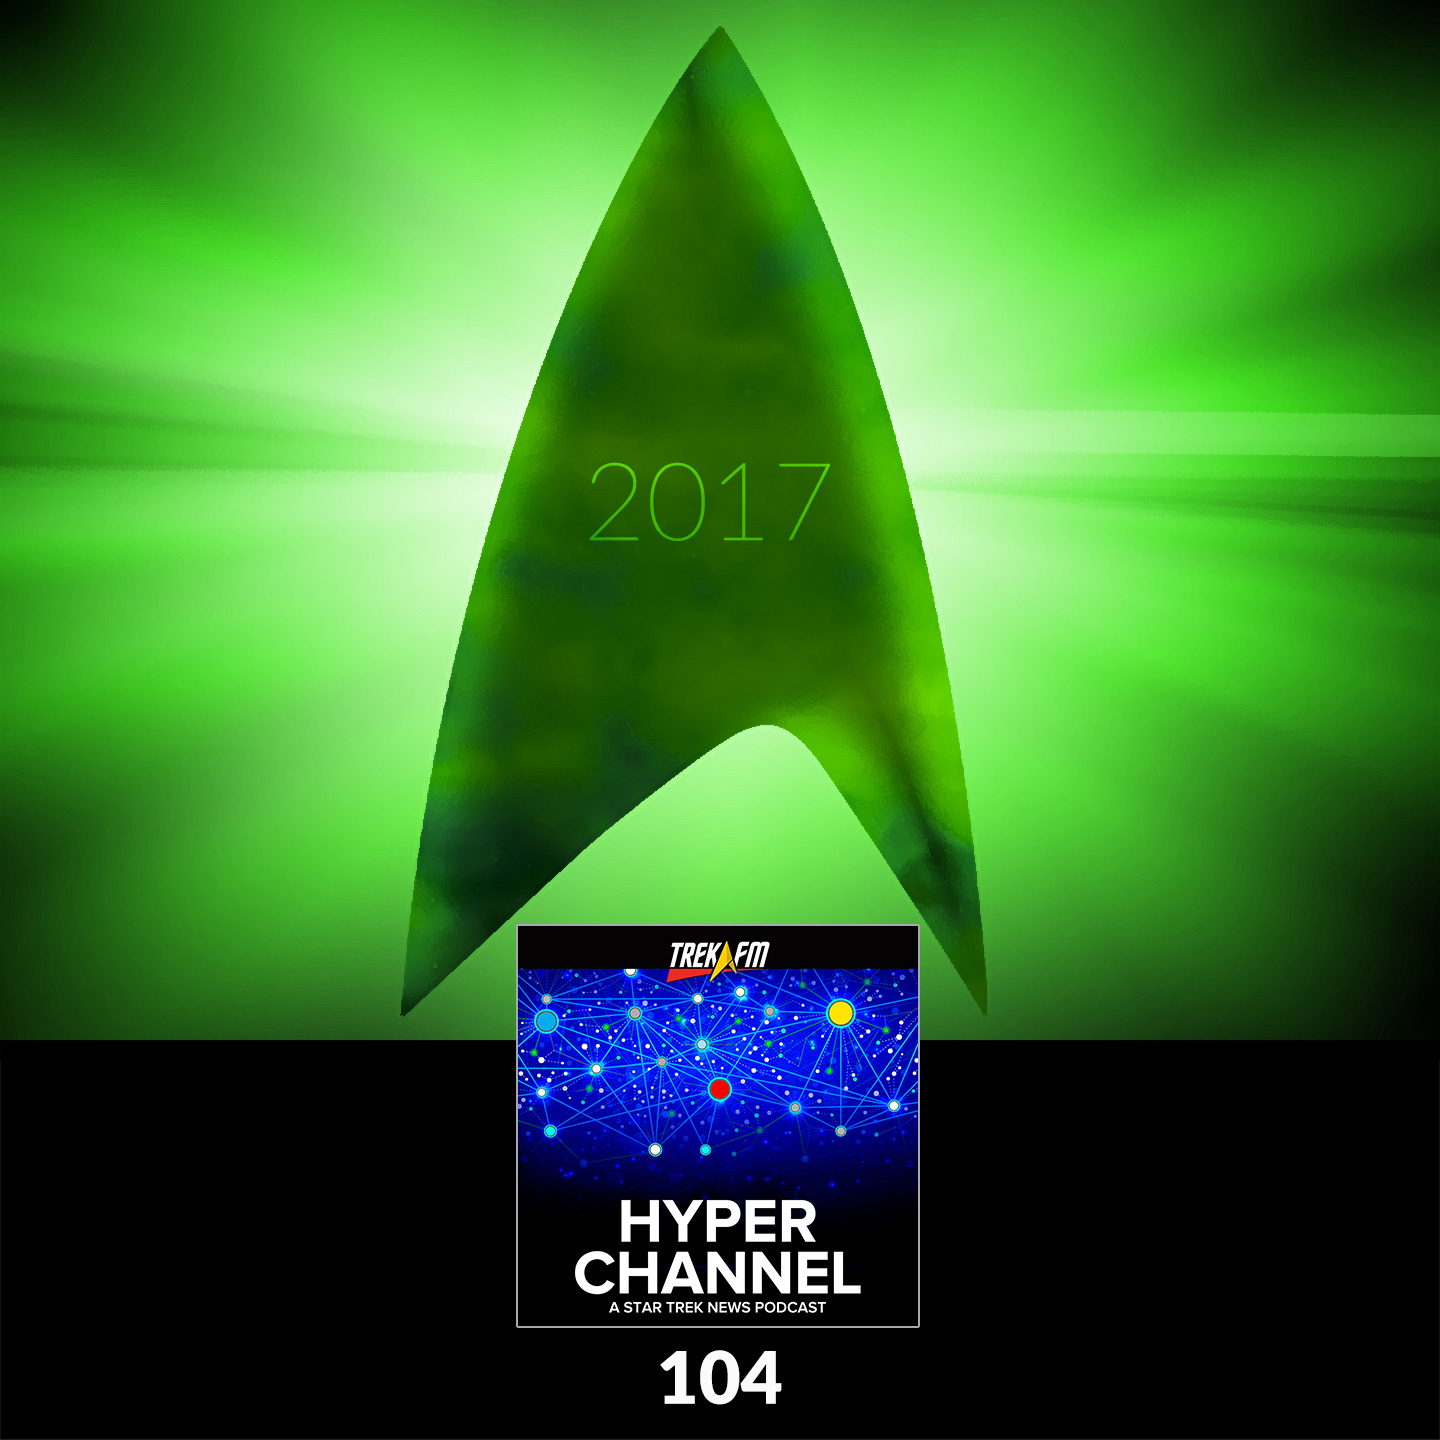 Hyperchannel 104: CBS Has Everything to Do with Streaming Star Trek Series